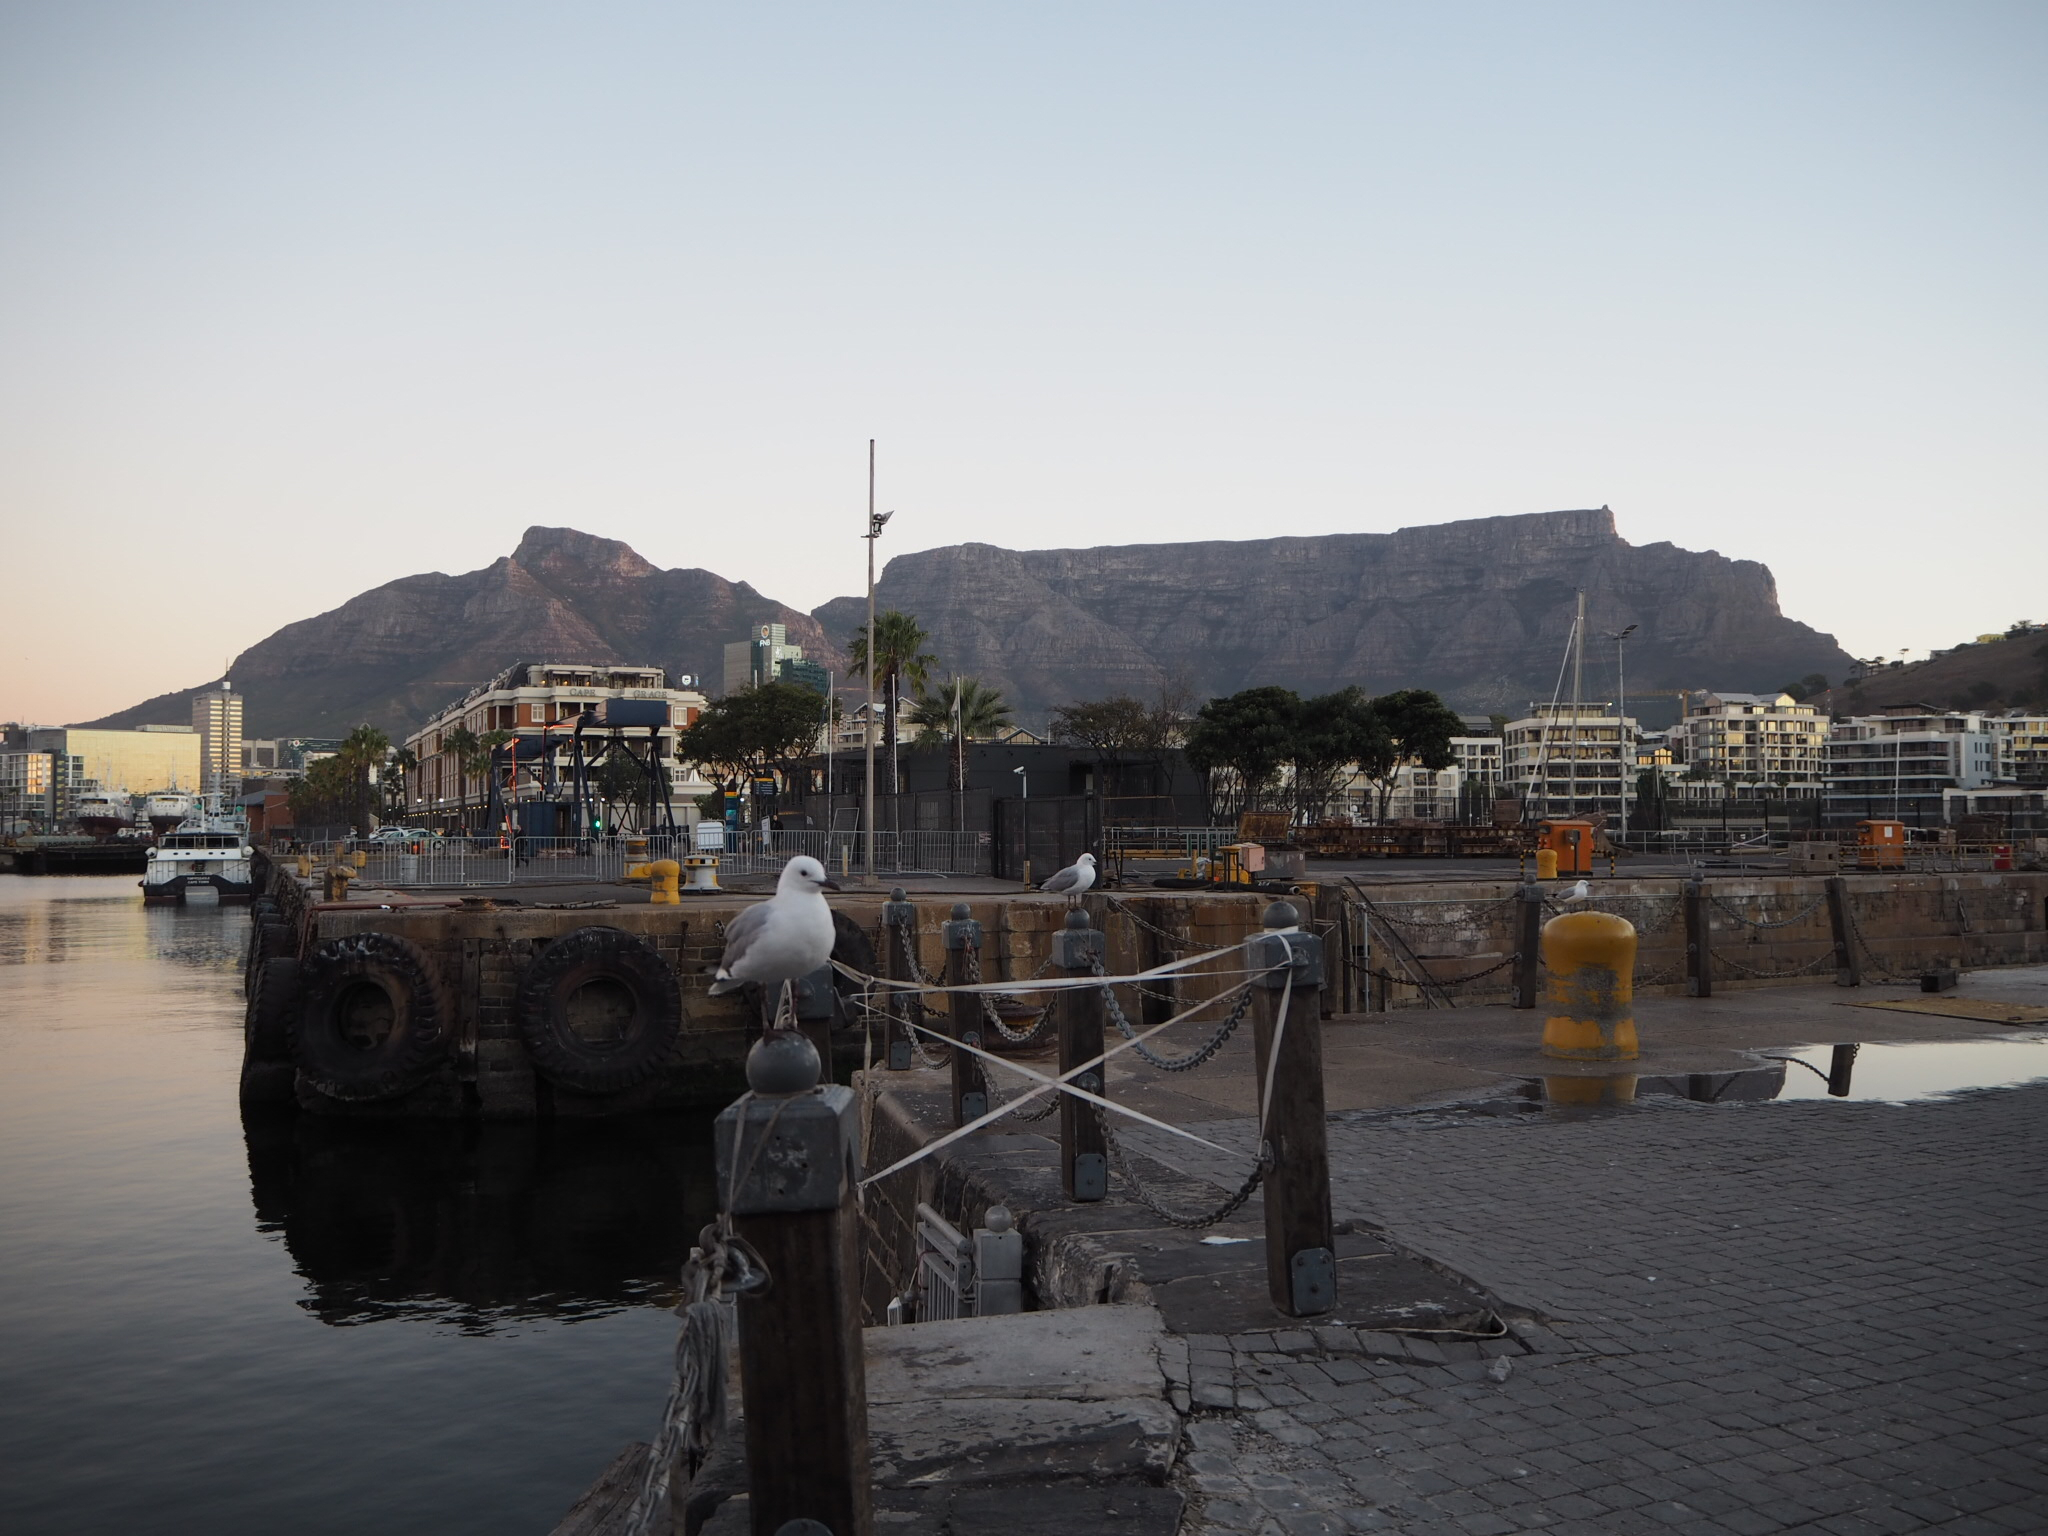 Never tired of looking at the beautiful Table Mountain.